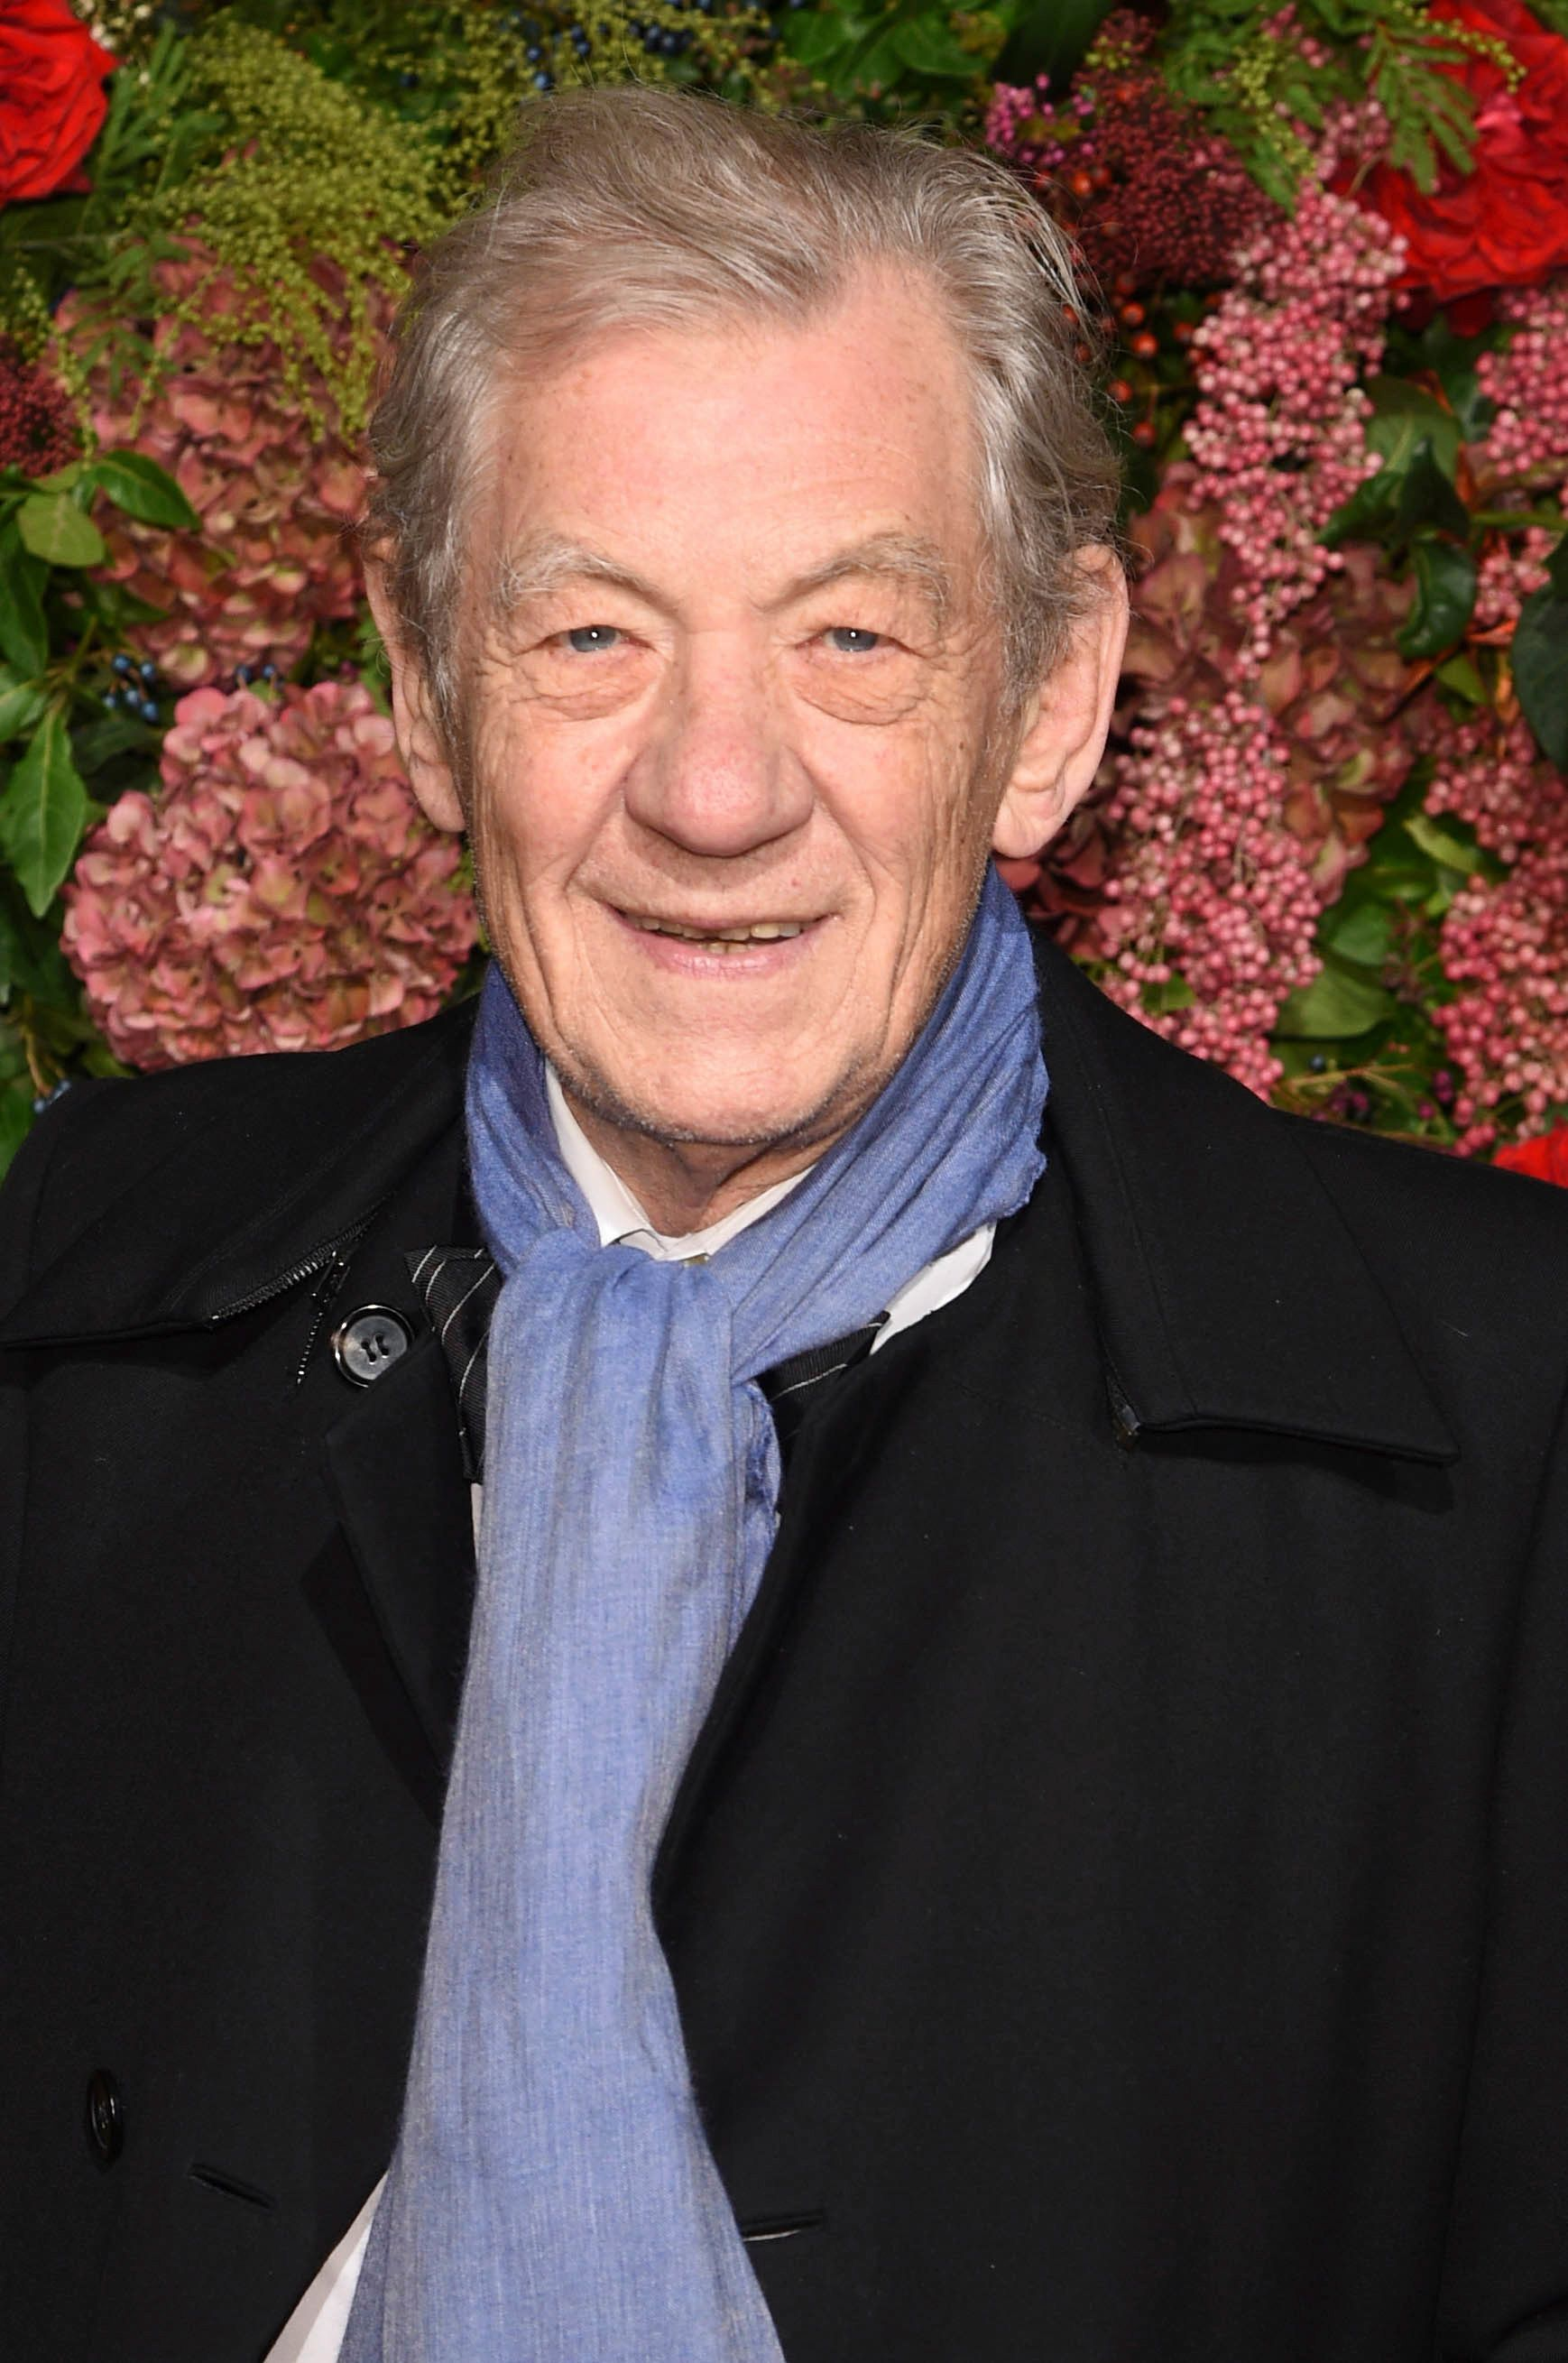 How Ian McKellen's Meeting With Prime Minister Helped Bring Gay Consent Age